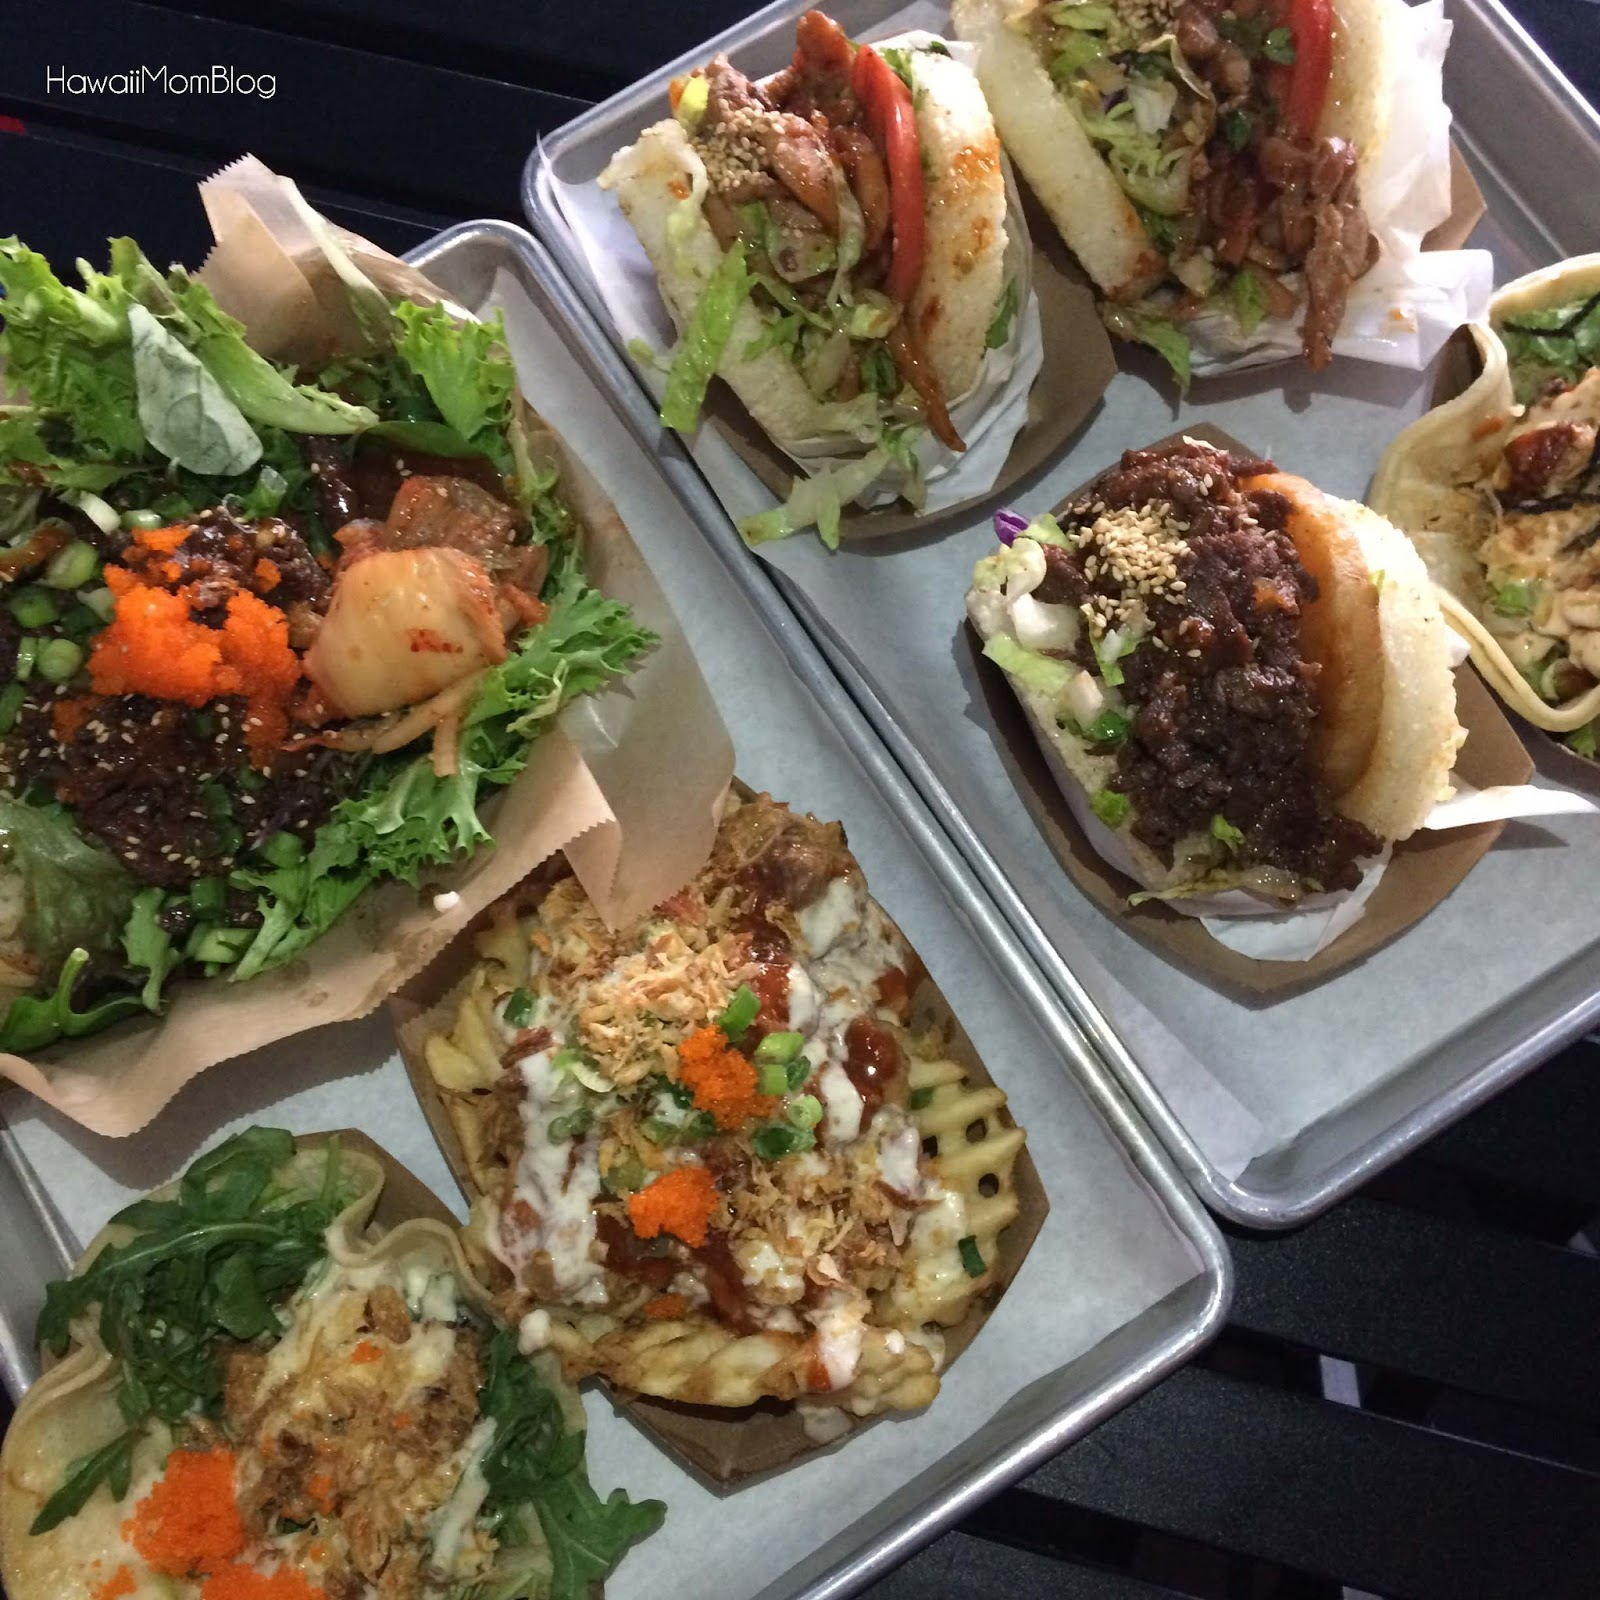 Hawaii Mom Blog: Visit San Francisco: KoJa Kitchen